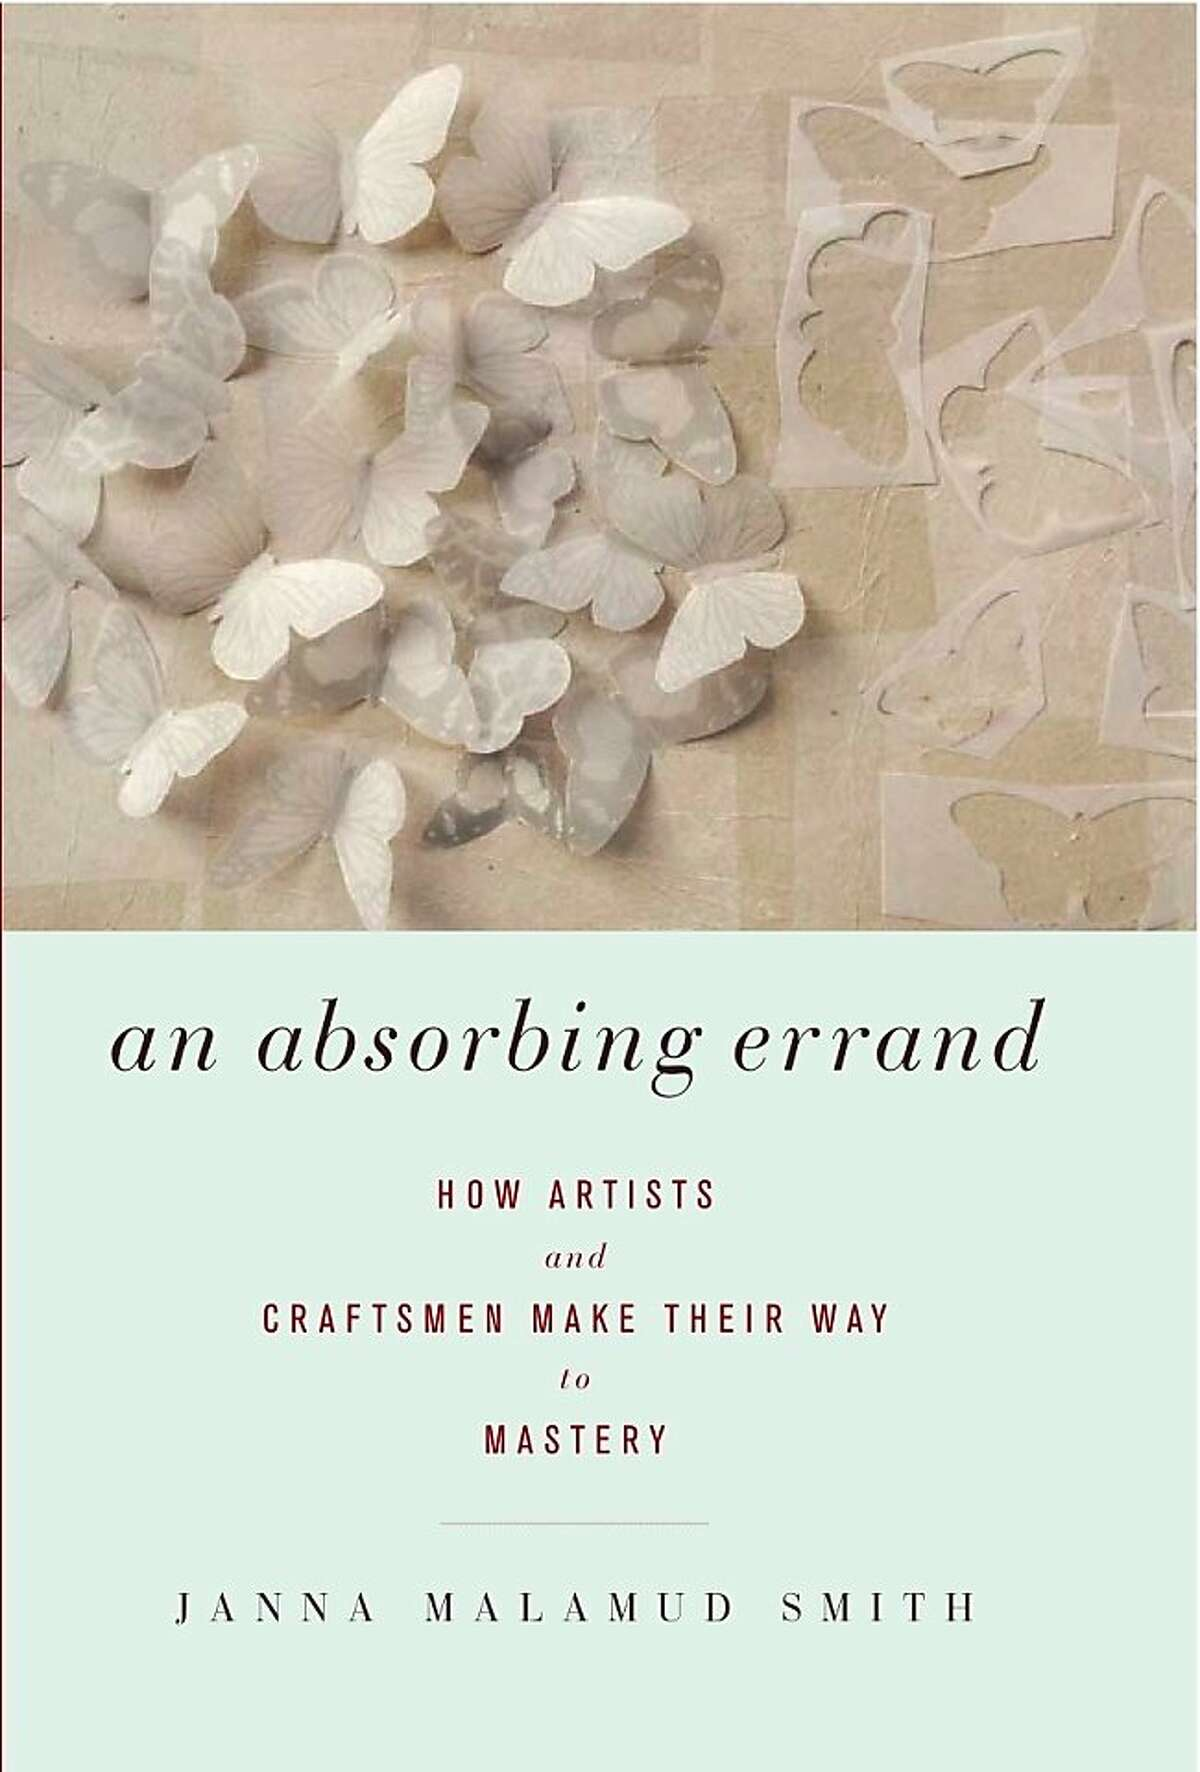 An Absorbing Errand, by Janna Malamud Smith